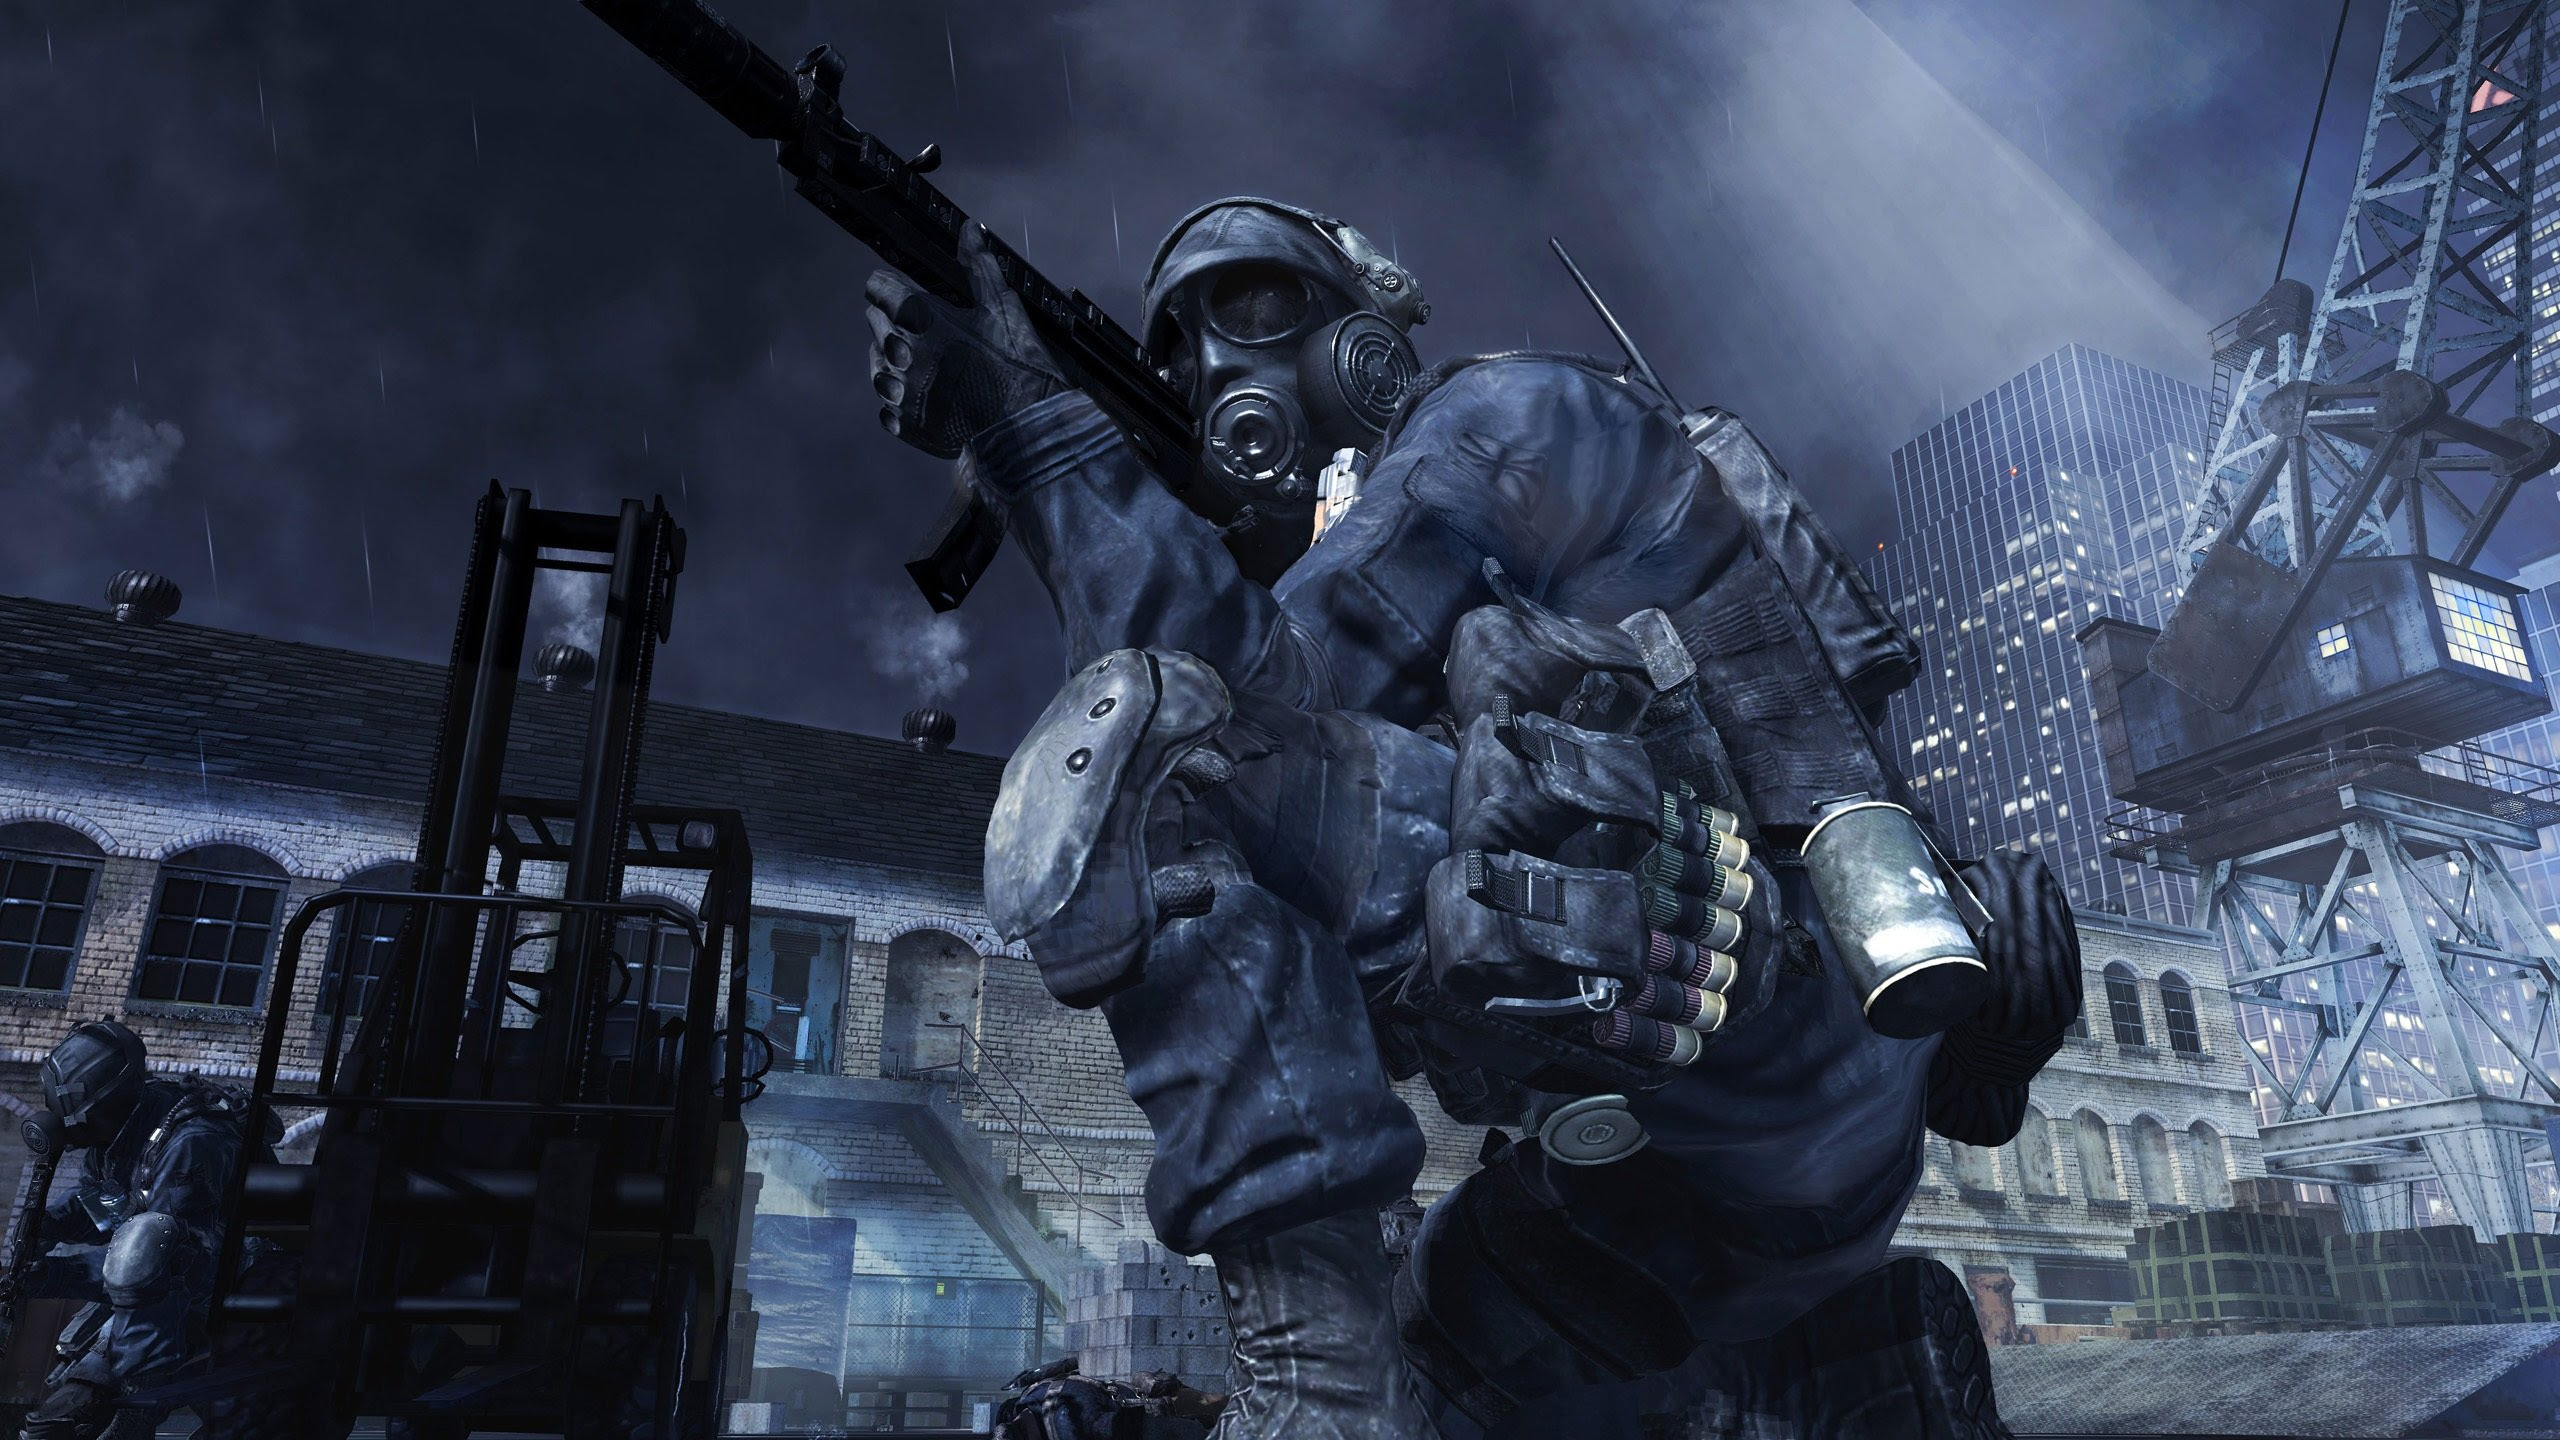 Call Of Duty Modern Warfare Remastered Wallpaper Games Call Of